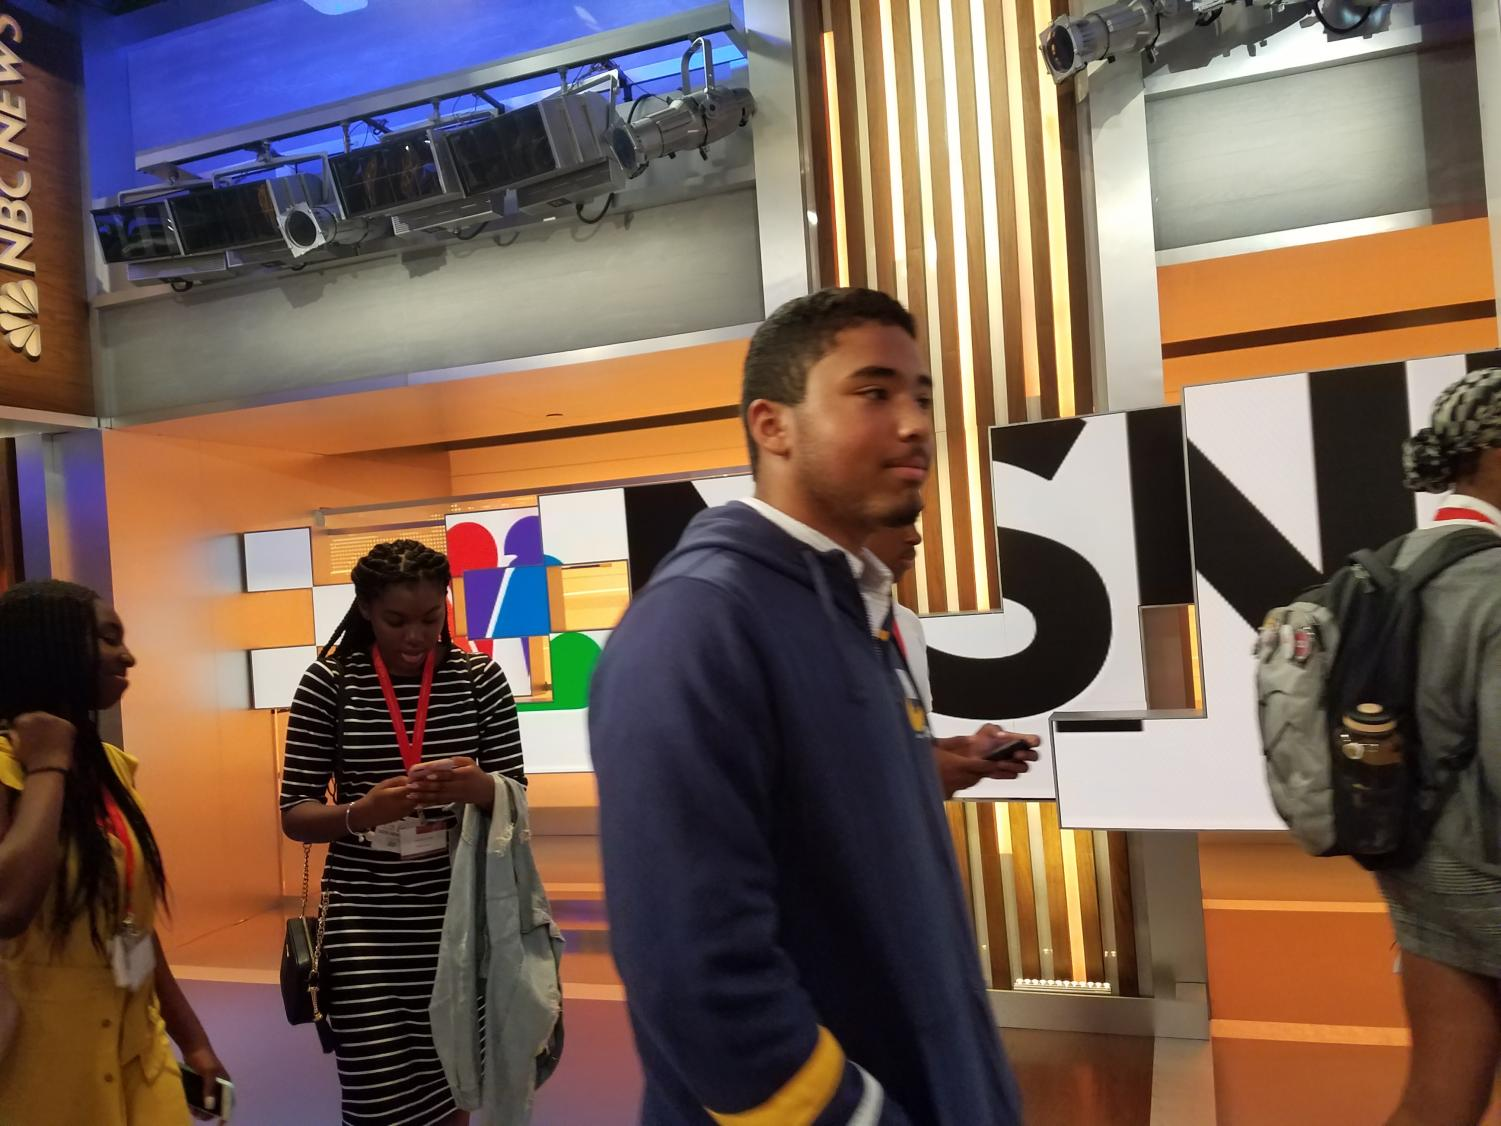 SBP student Alex Benanti UD1 visited major media outlets such as MSNBC studios as part of a selective summer journalism program at Rutgers University in New Brunswick.